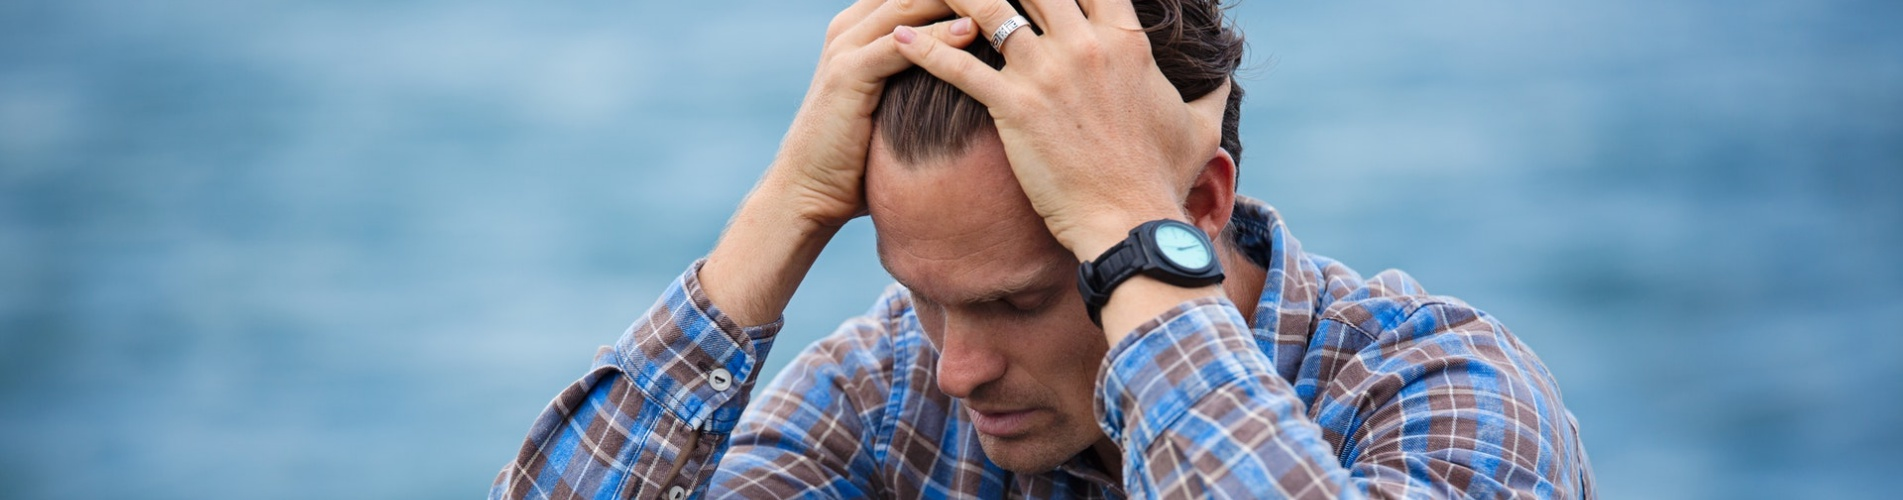 Stress Disorders May Be Linked To Heart Disease